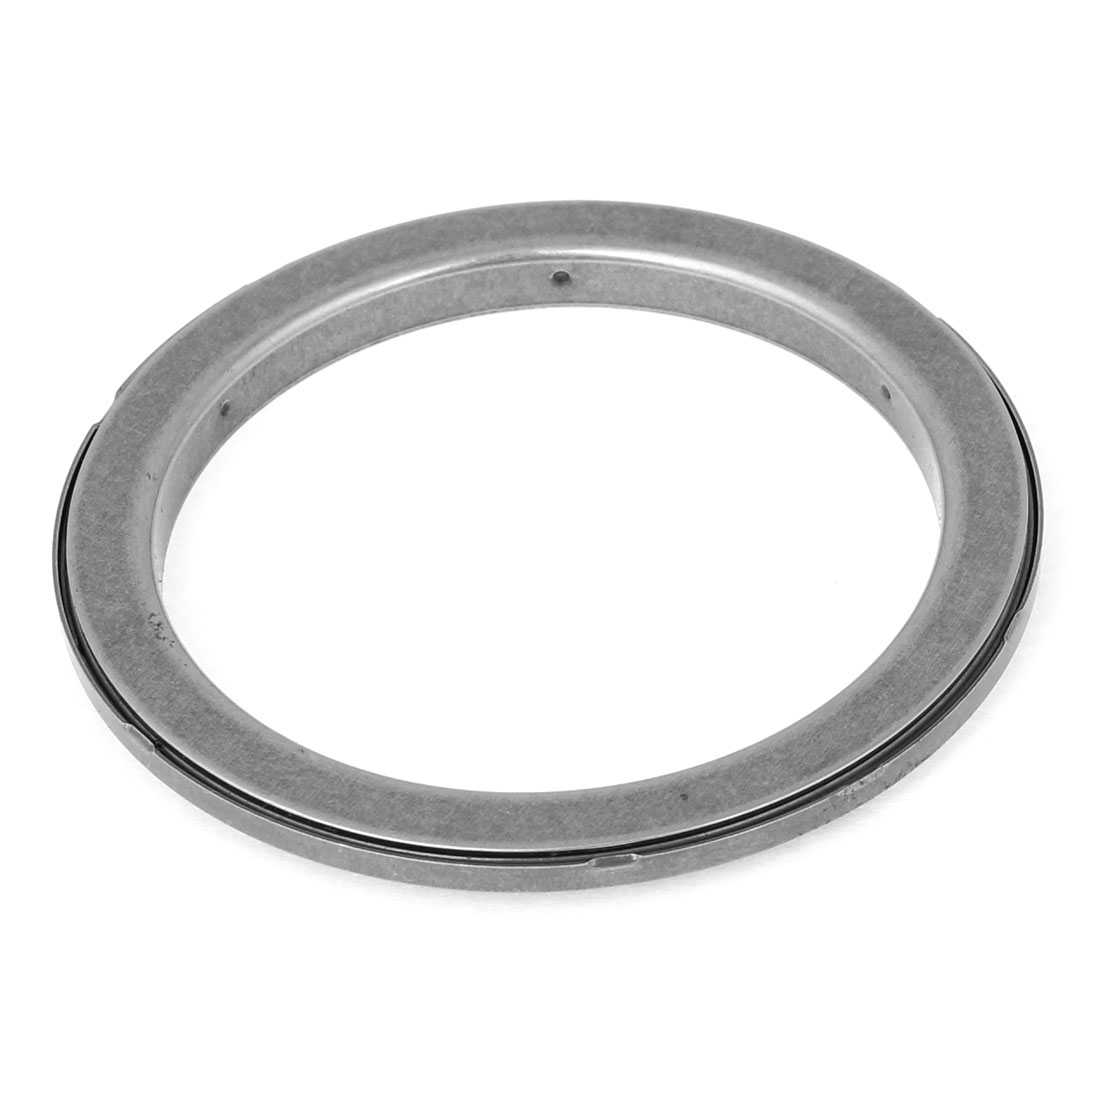 Single Lip Piston Rod Metal Oil Seal 53mm x 66mm x 5mm